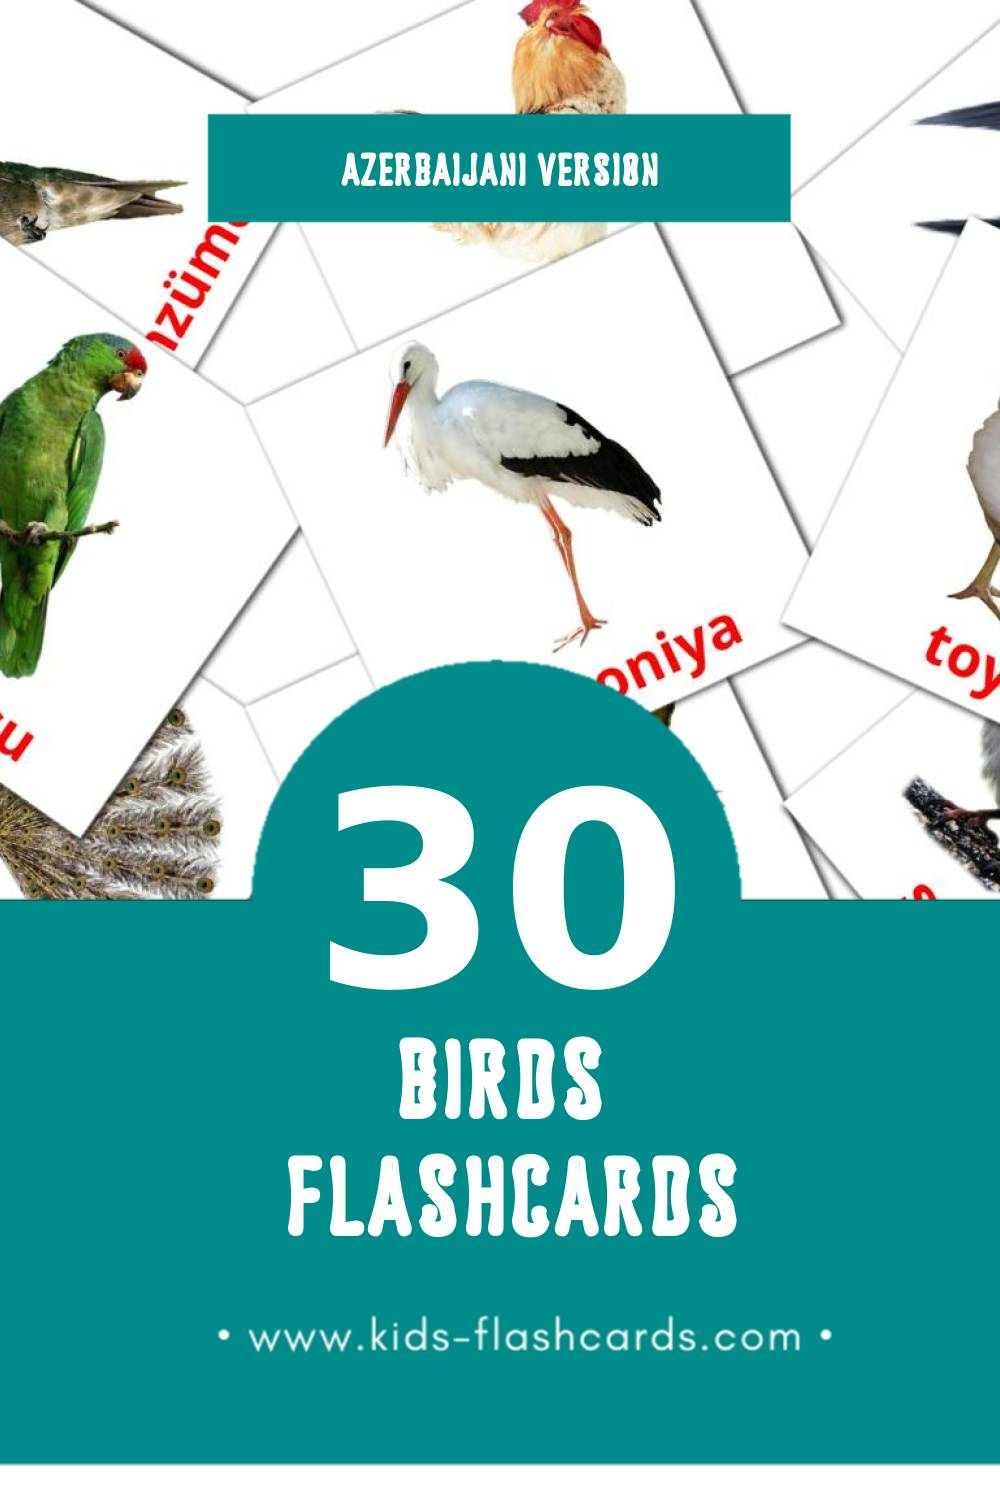 Visual Quşlar Flashcards for Toddlers (30 cards in Azerbaijani)